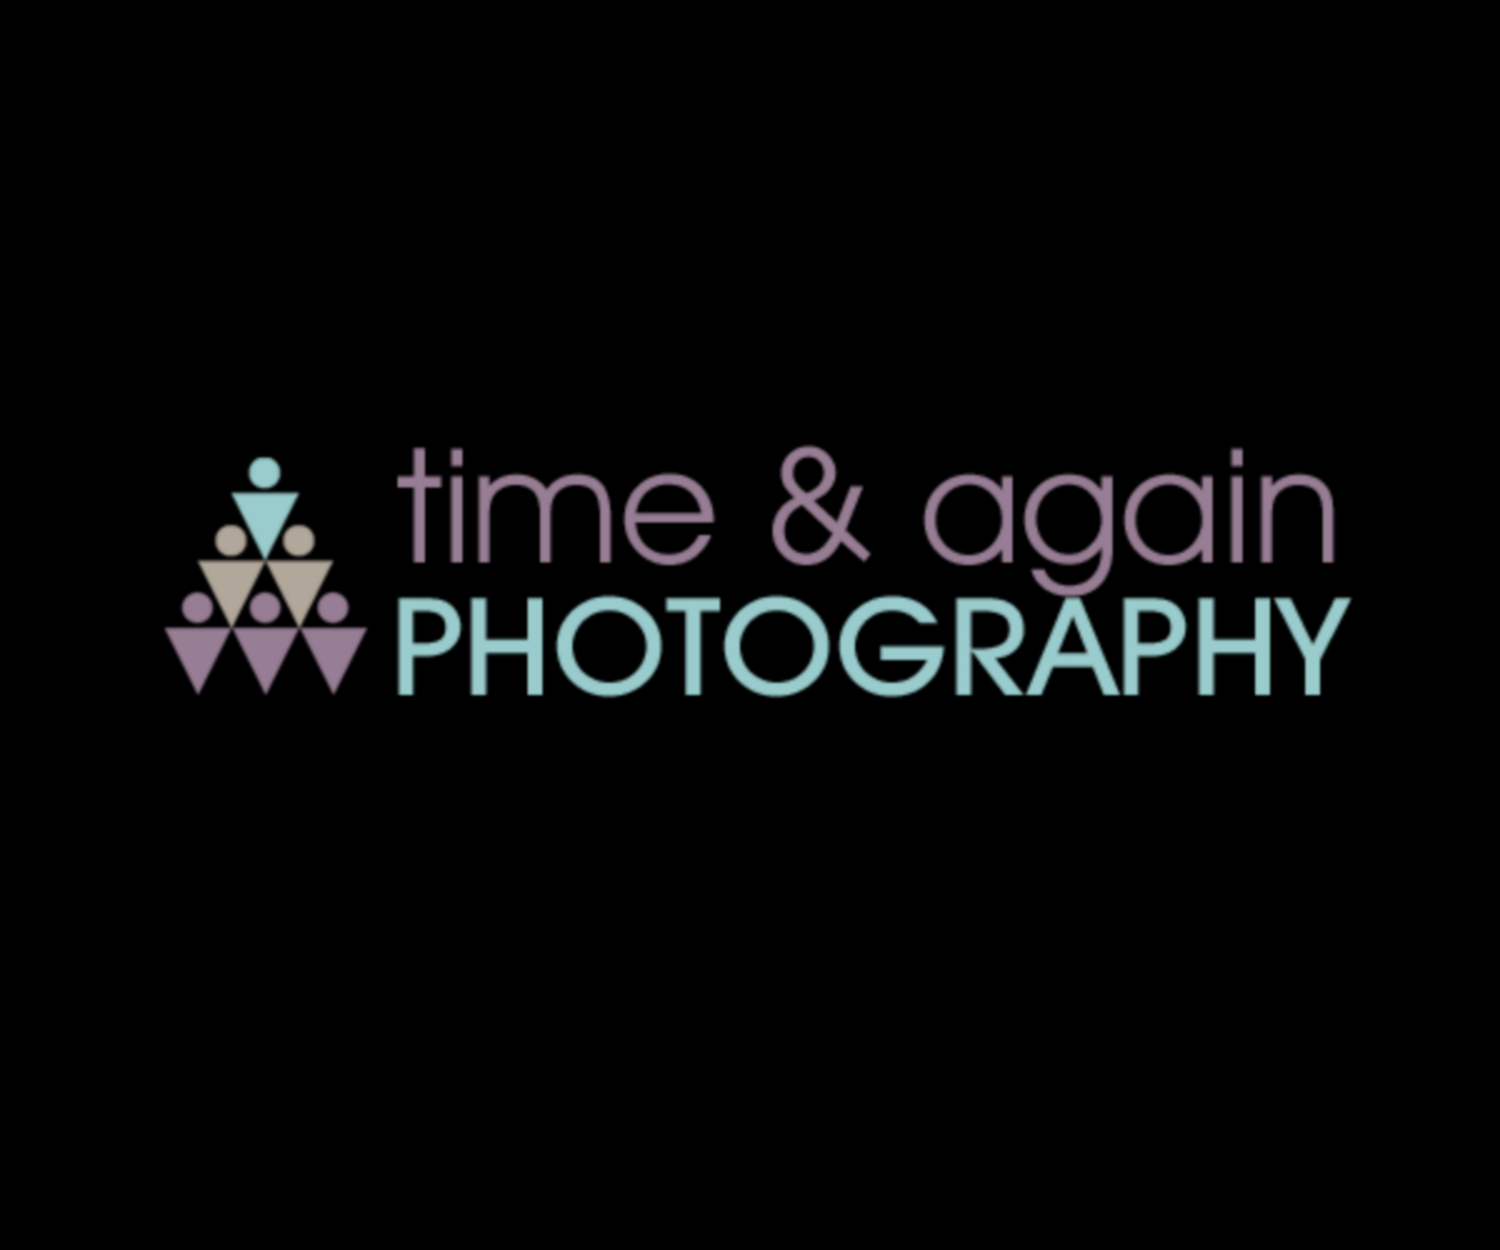 Time & Again Photography